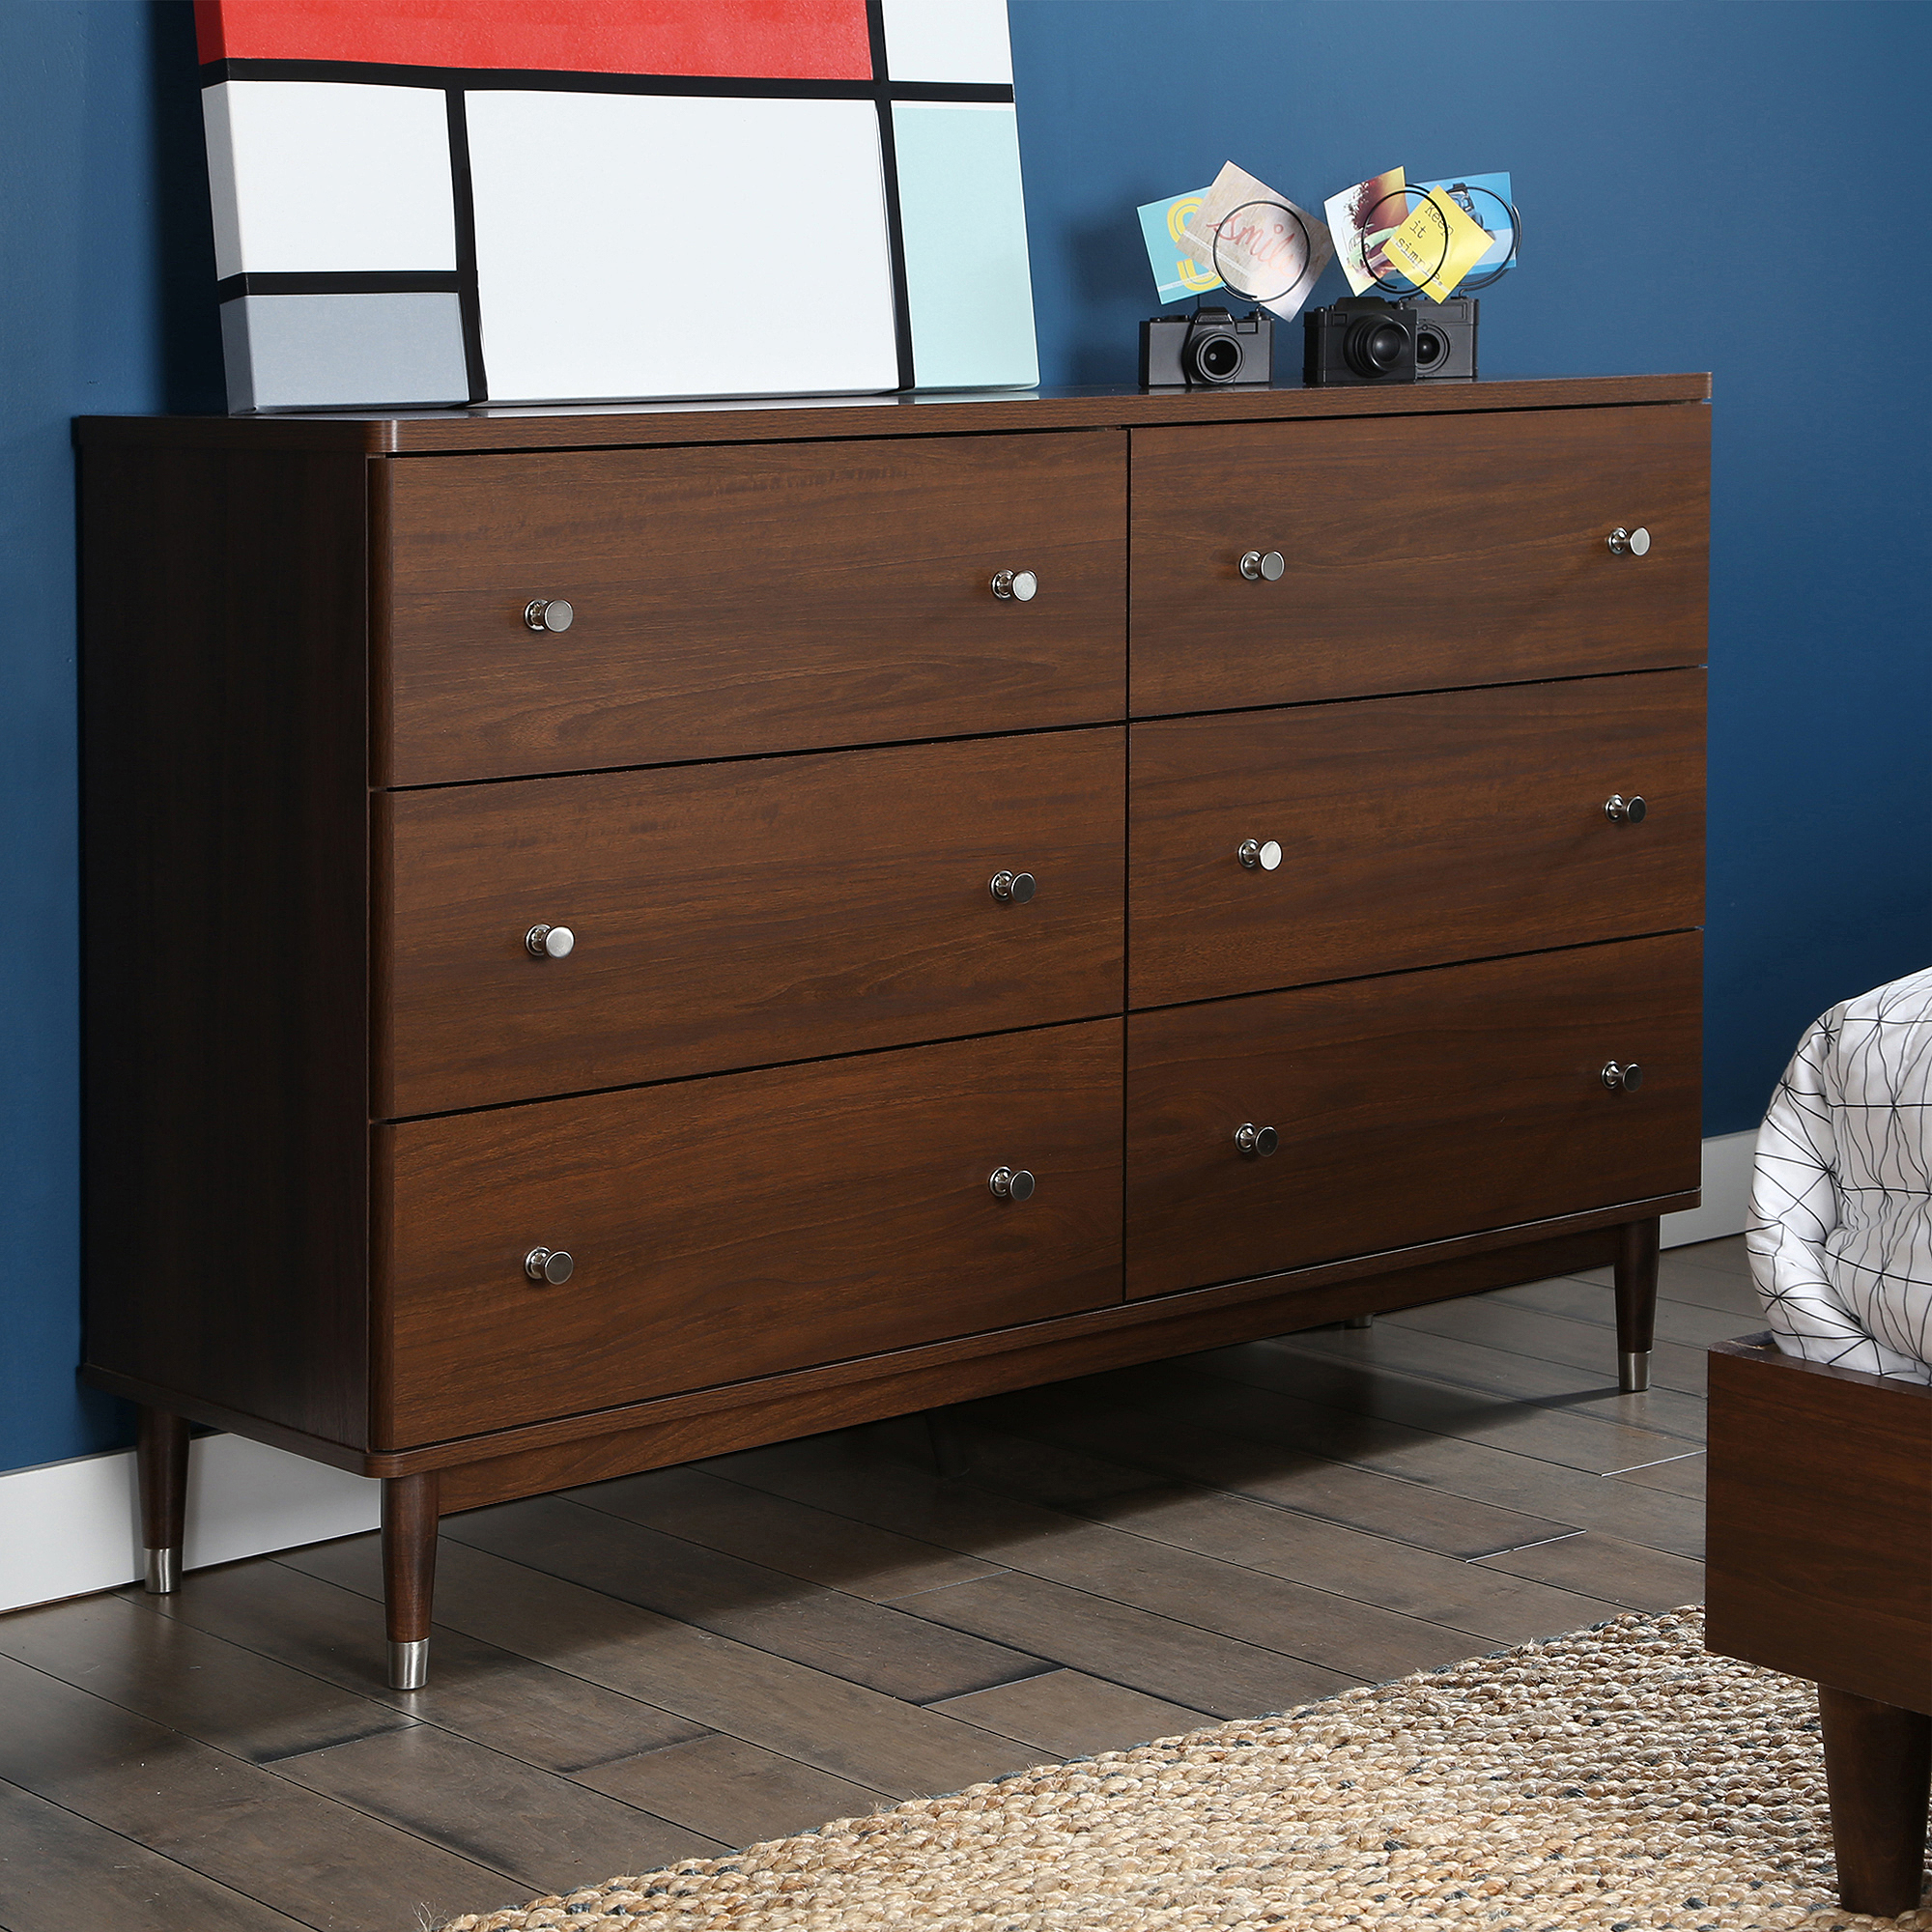 south shore olly midcentury modern drawer double dresser brown  - south shore olly midcentury modern drawer double dresser brown walnut walmartcom